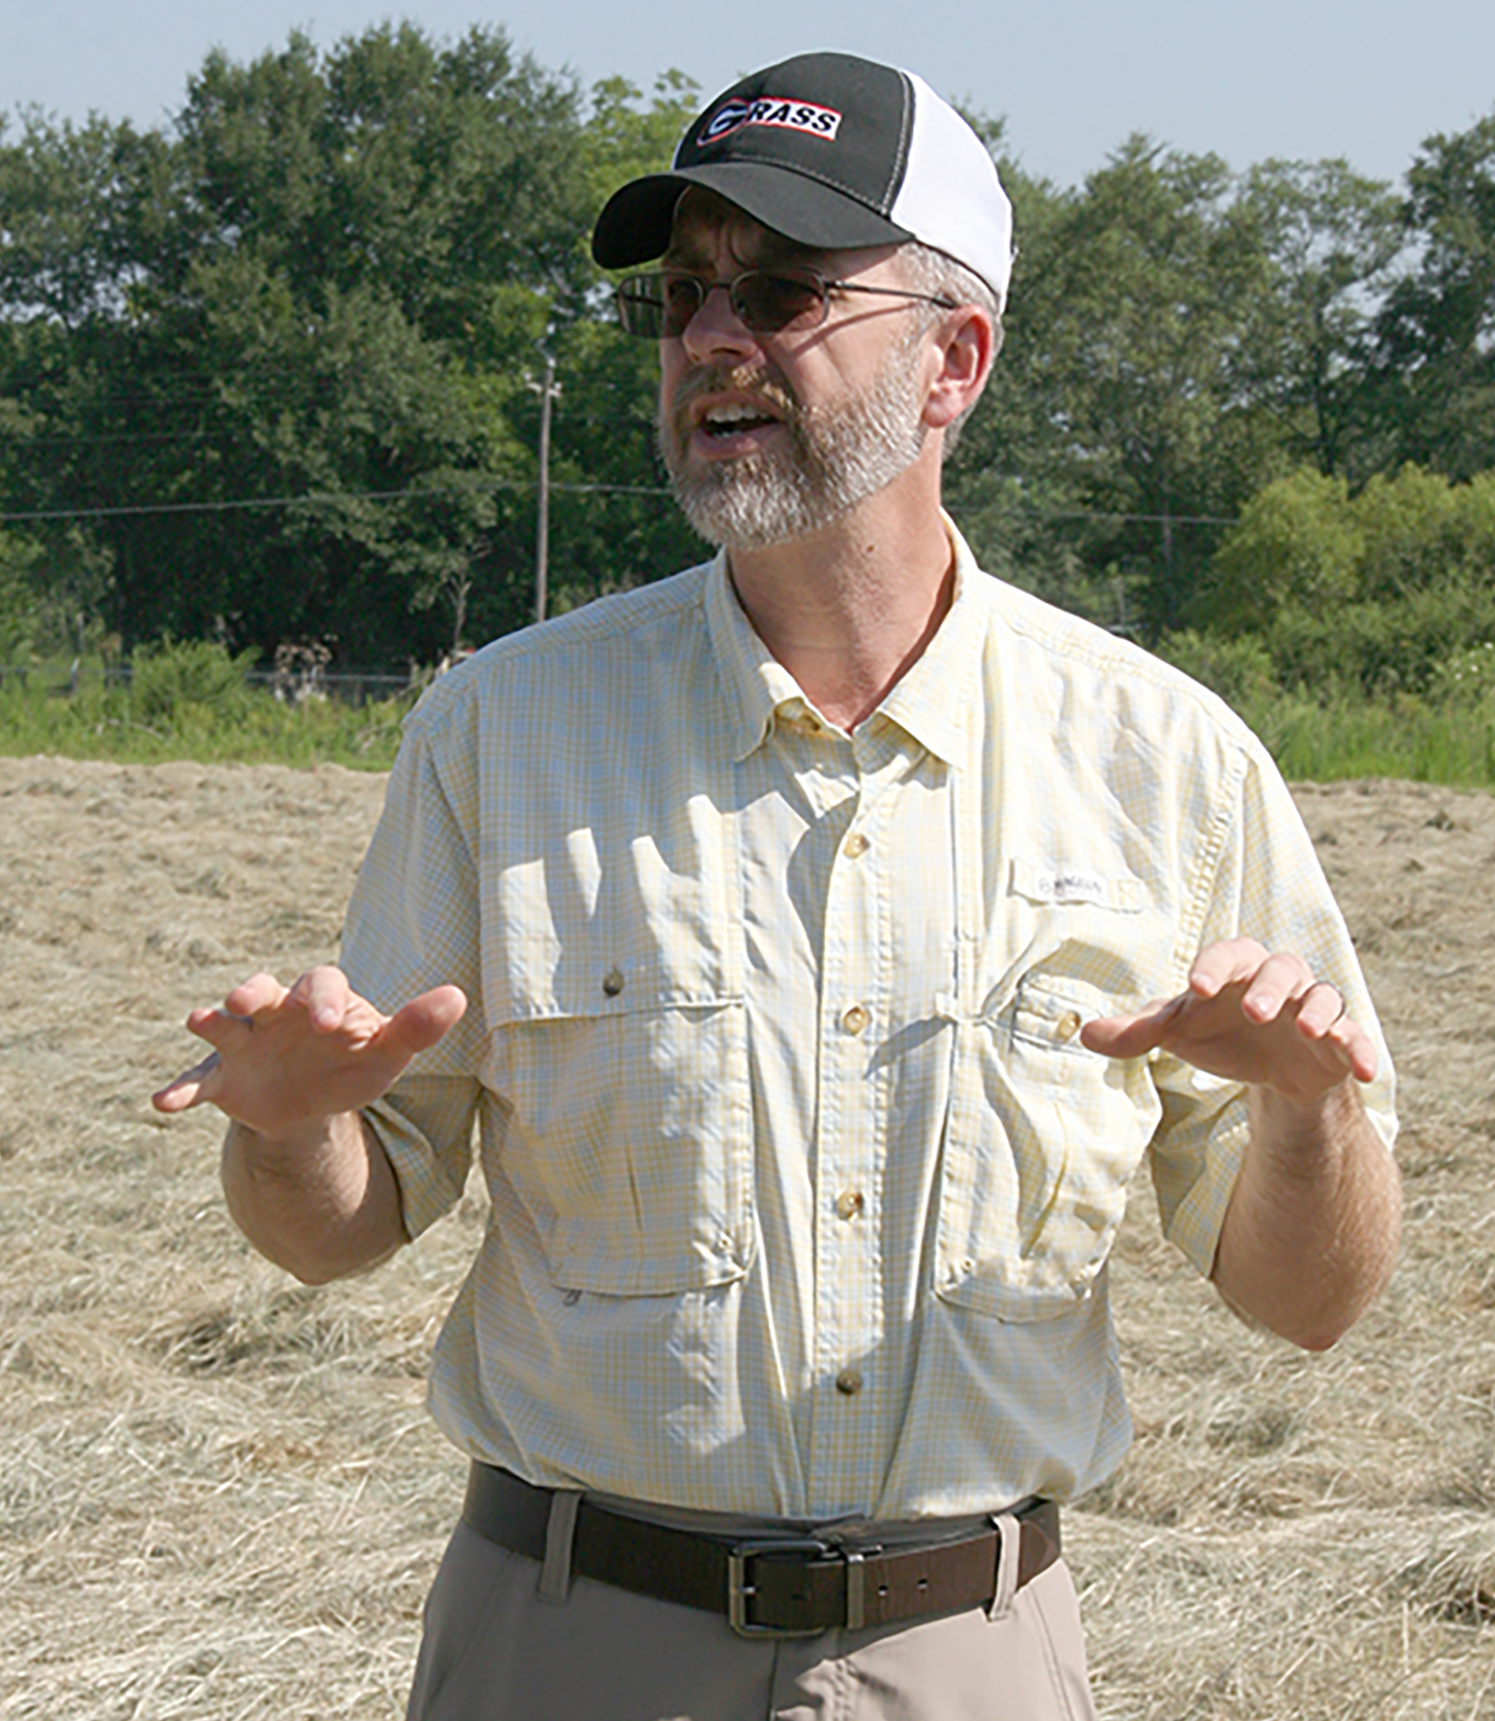 UGA Forage Extension Specialist Dennis Hancock speaks at the Sunbelt Field Day in 2015. He is among the scheduled presenters during this year's field day on July 25, 2019.